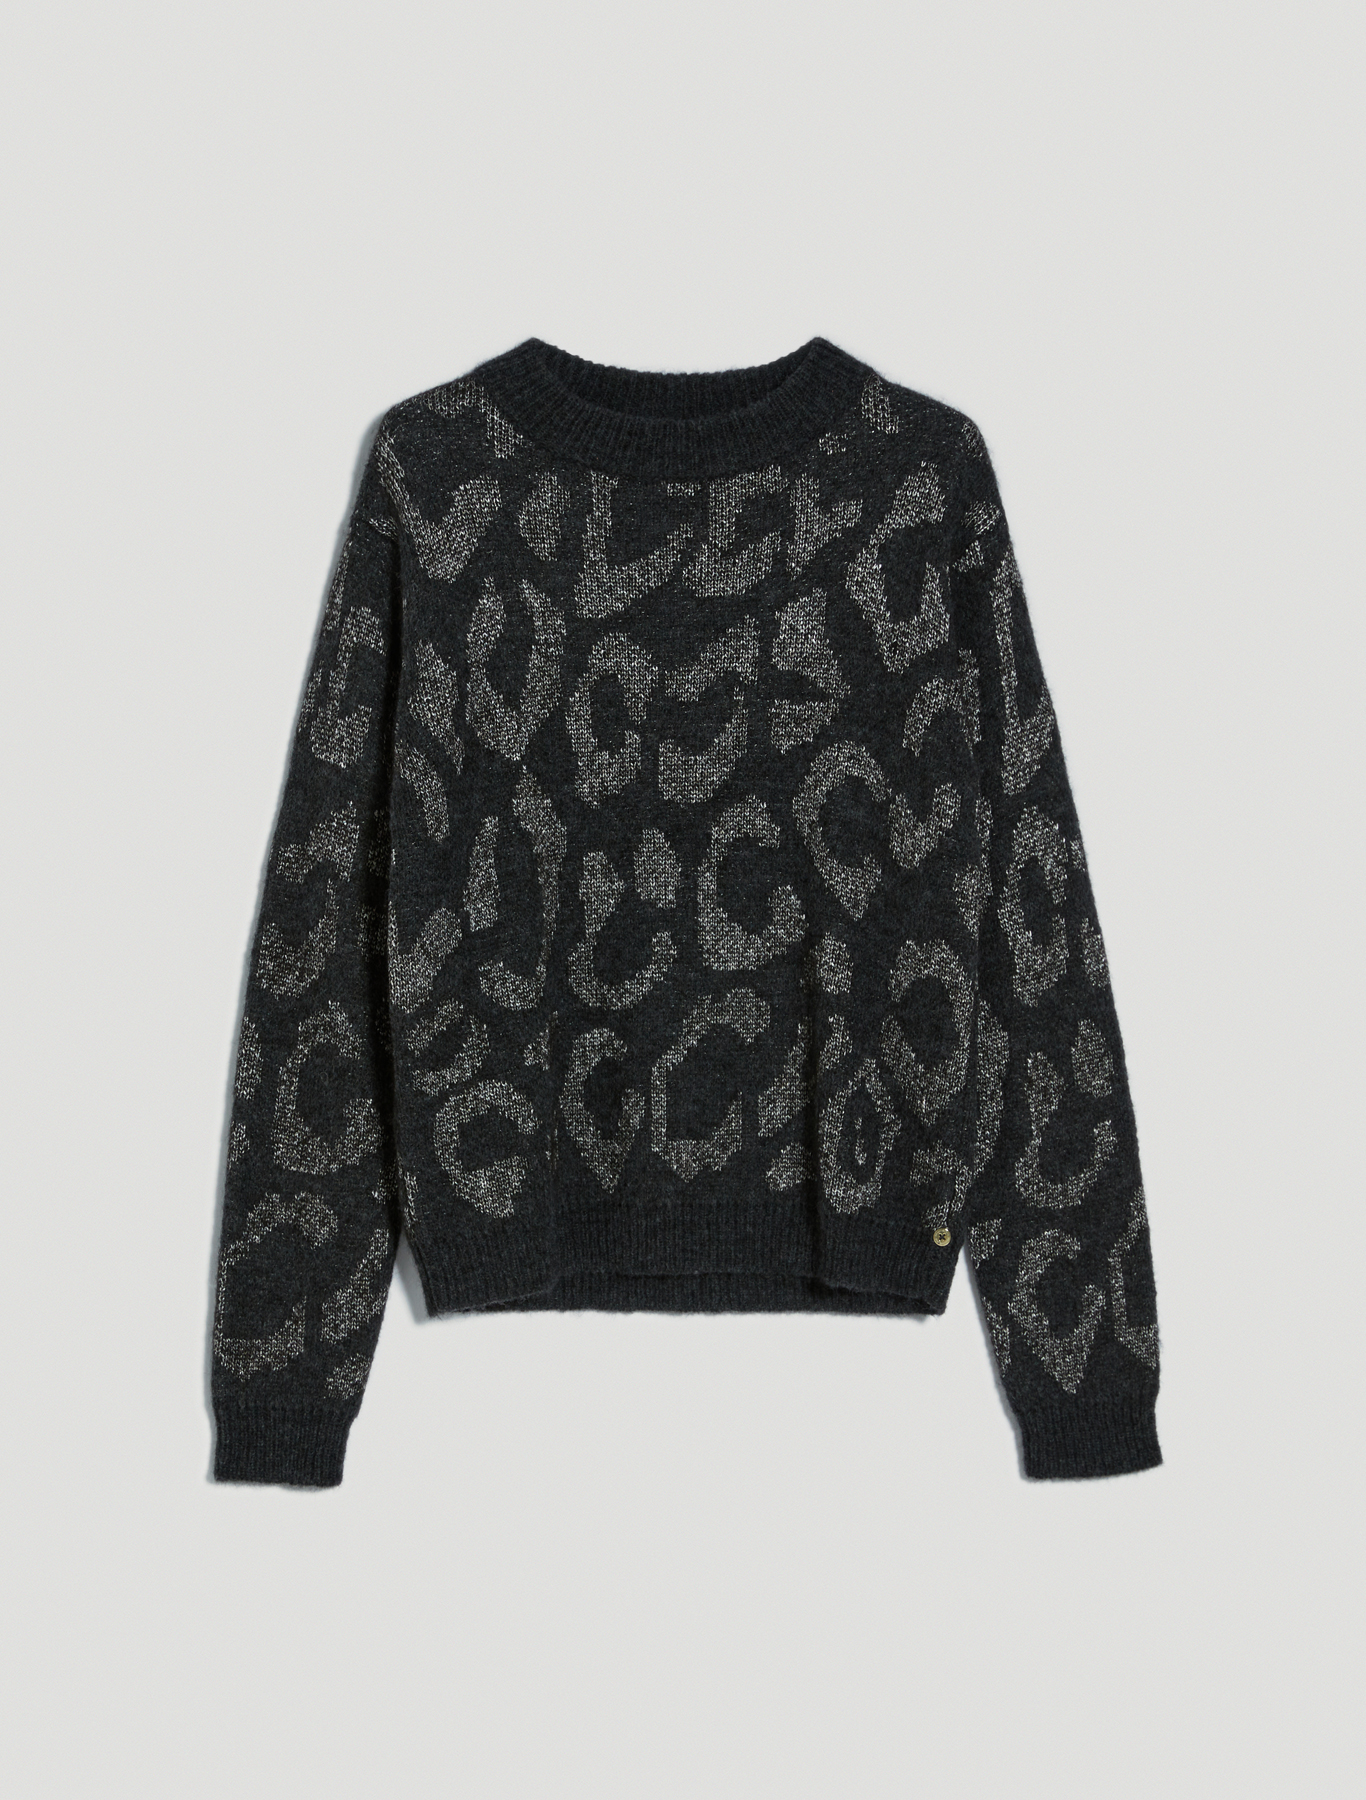 Spotted jacquard pullover - anthracite - pennyblack